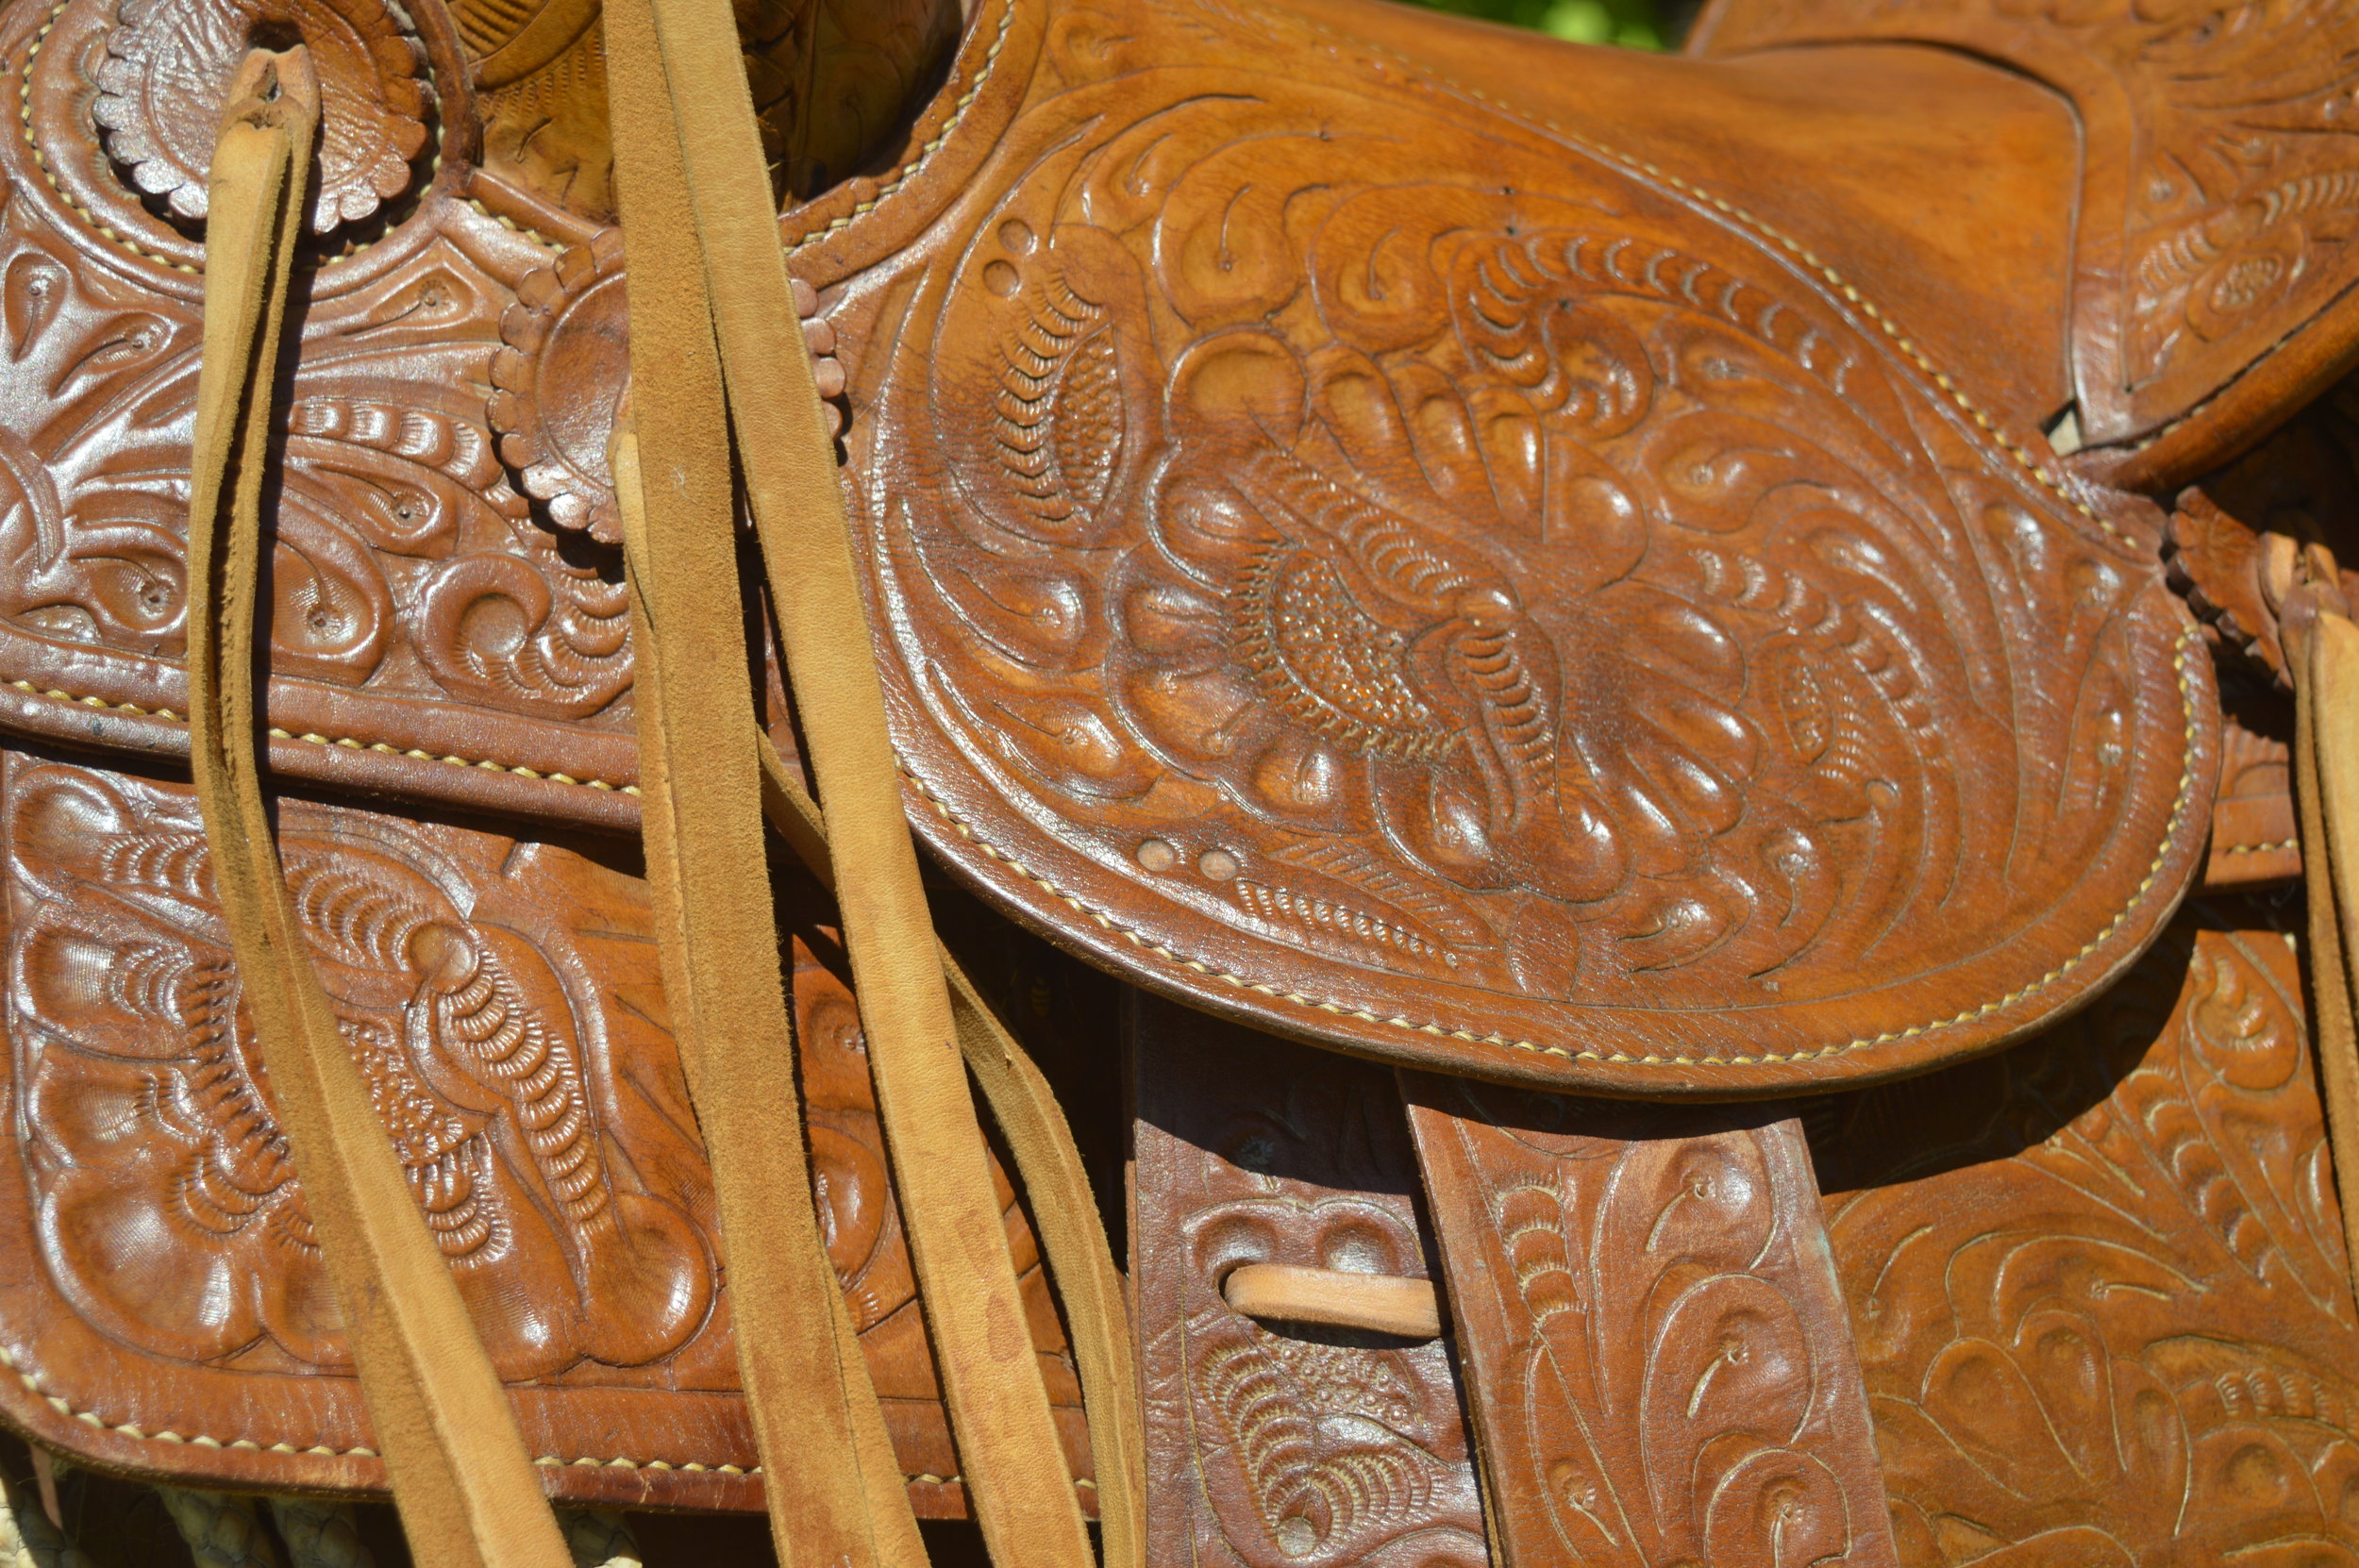 The details of Oscar's traditional, handmade leather saddle.